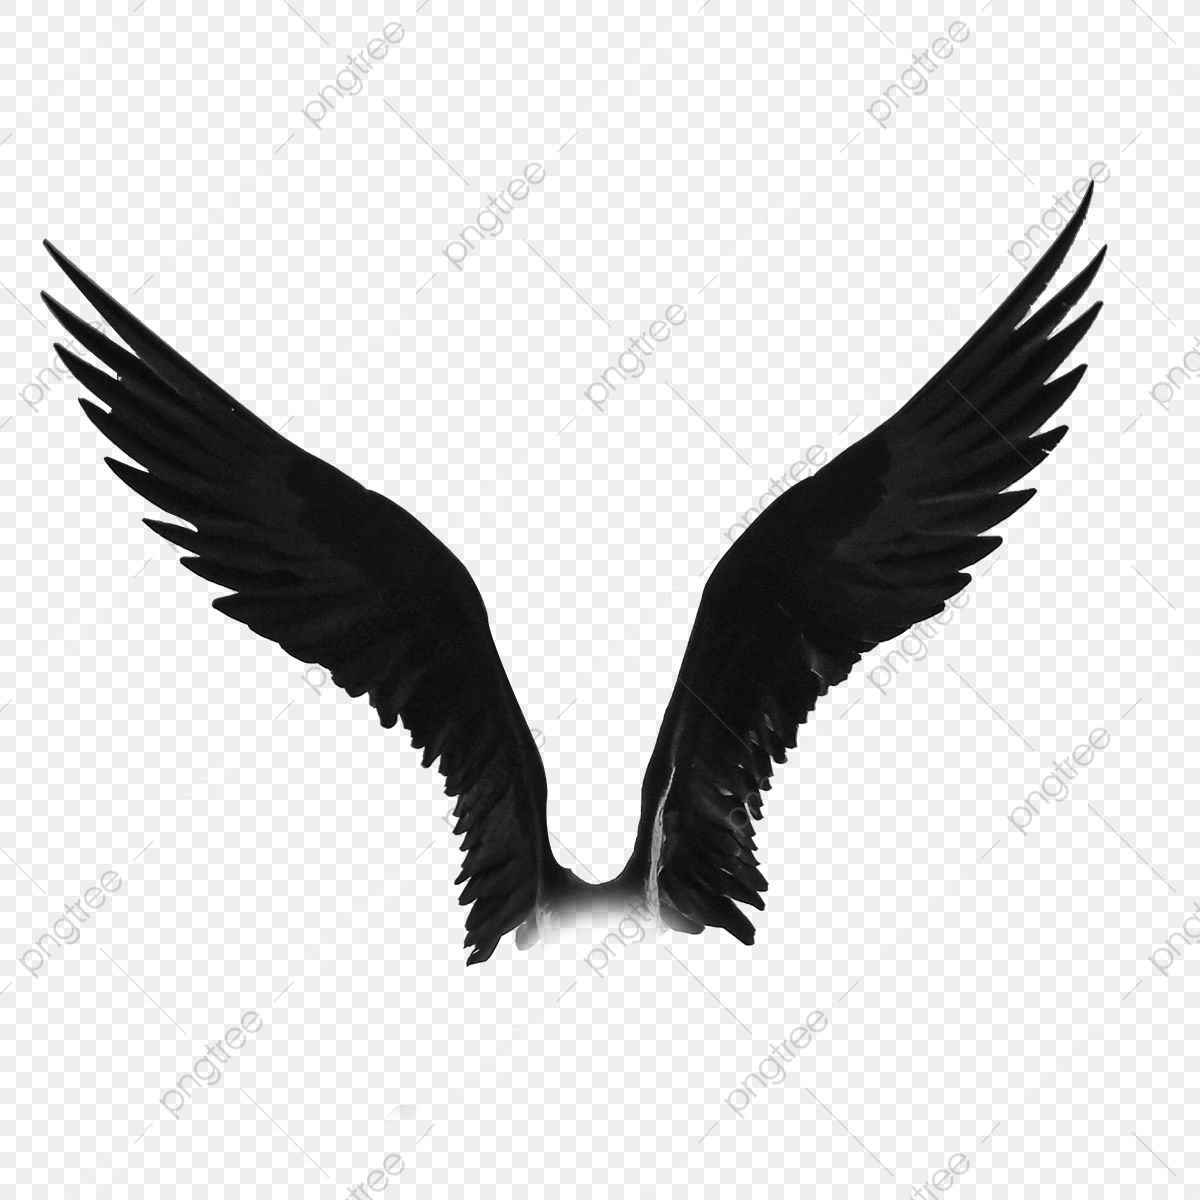 Download This Frigate Bird Wings Png Transparent Background Frigate Bird Png Png Clipart Image With Transparent Backgro Bird Wings Wings Png Angel Wings Png